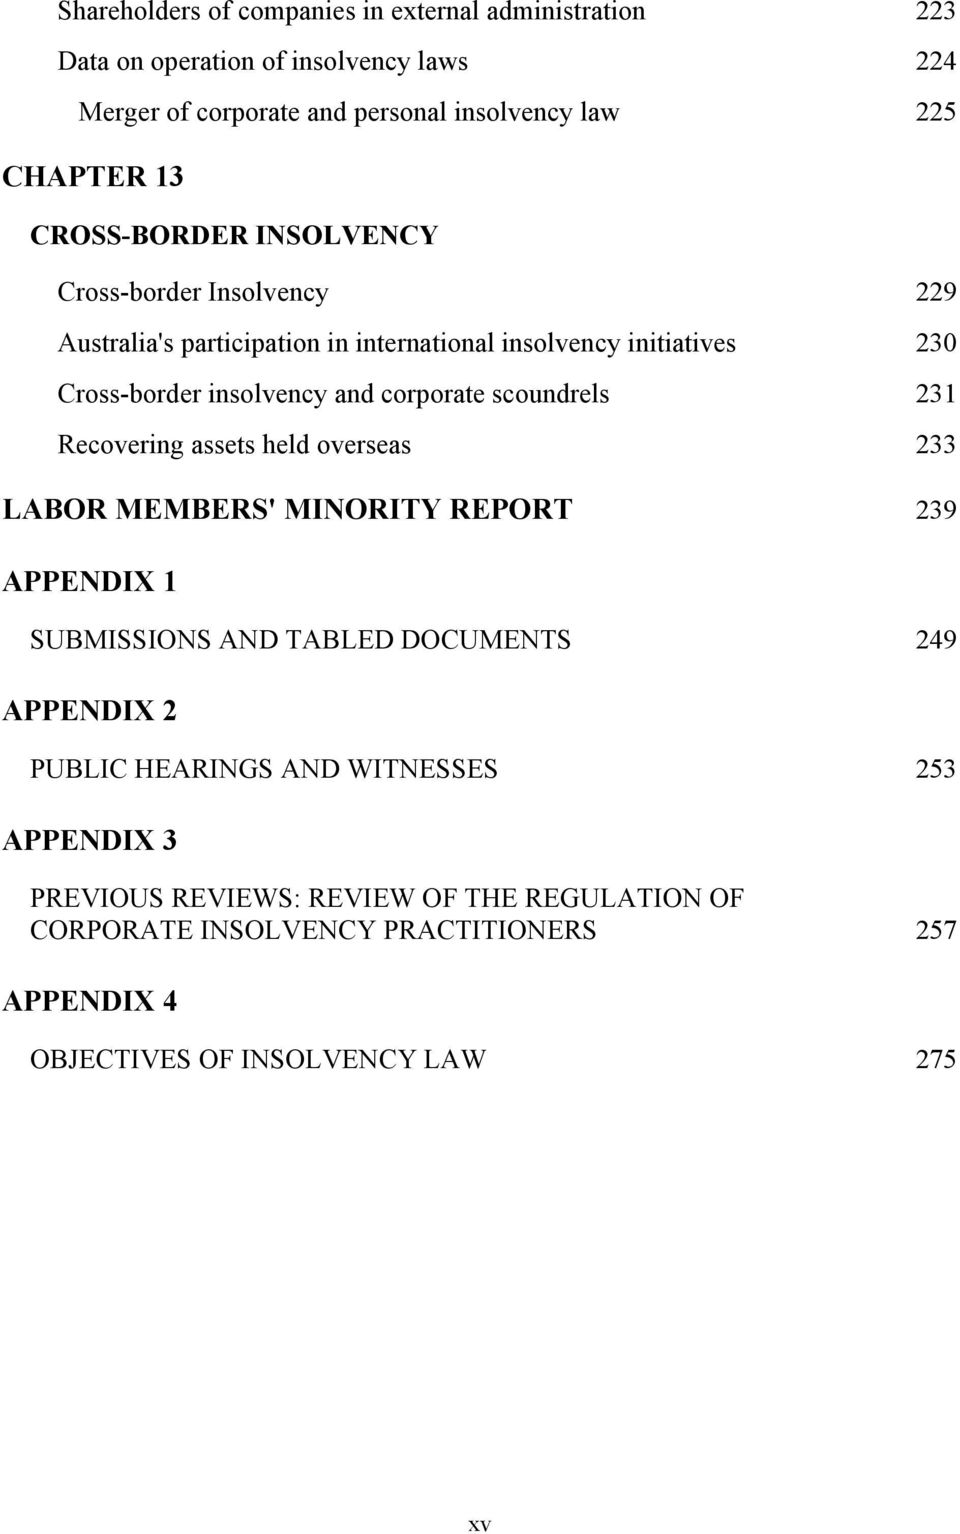 scoundrels 231 Recovering assets held overseas 233 LABOR MEMBERS' MINORITY REPORT 239 APPENDIX 1 SUBMISSIONS AND TABLED DOCUMENTS 249 APPENDIX 2 PUBLIC HEARINGS